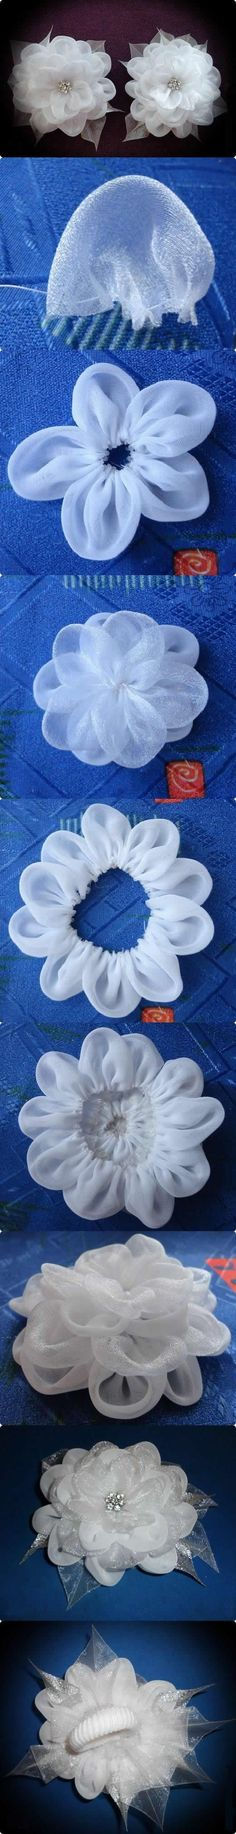 DIY Fabric Flower RingFree Diy Jewelry Projects | Learn how to make jewelry - beads.us